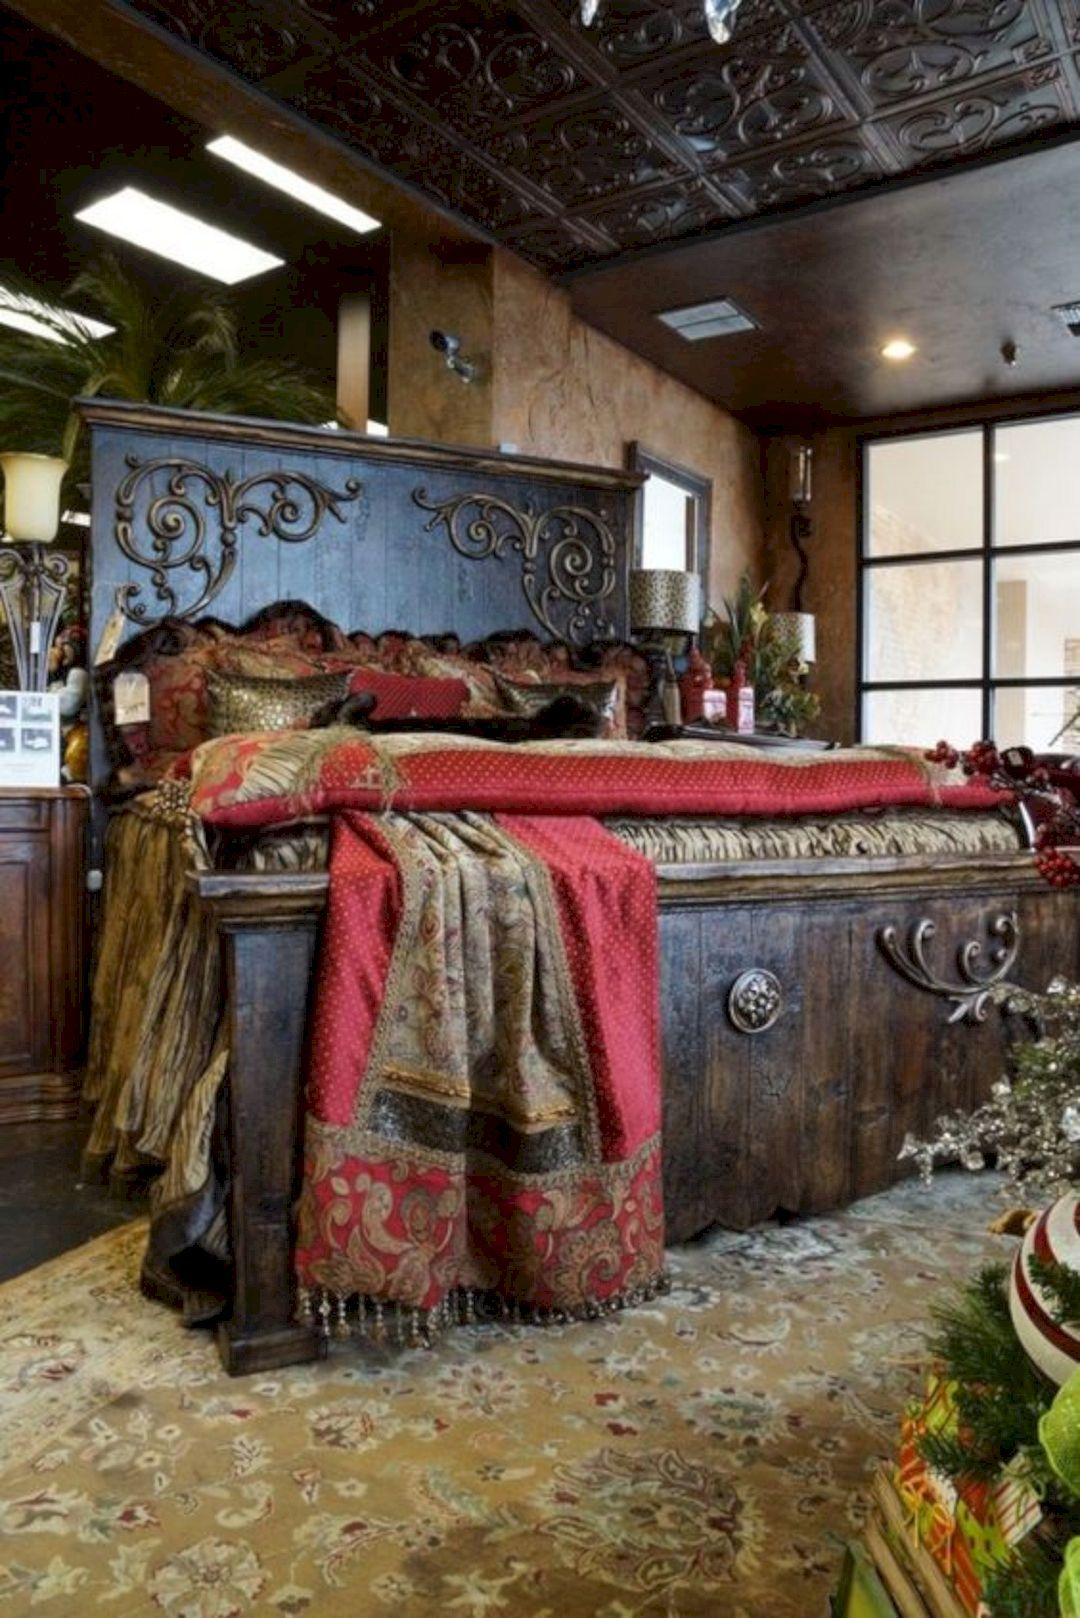 16 Classic Old World Interior Design Ideas Tuscan Bedroom World Decor Decorating Your Home